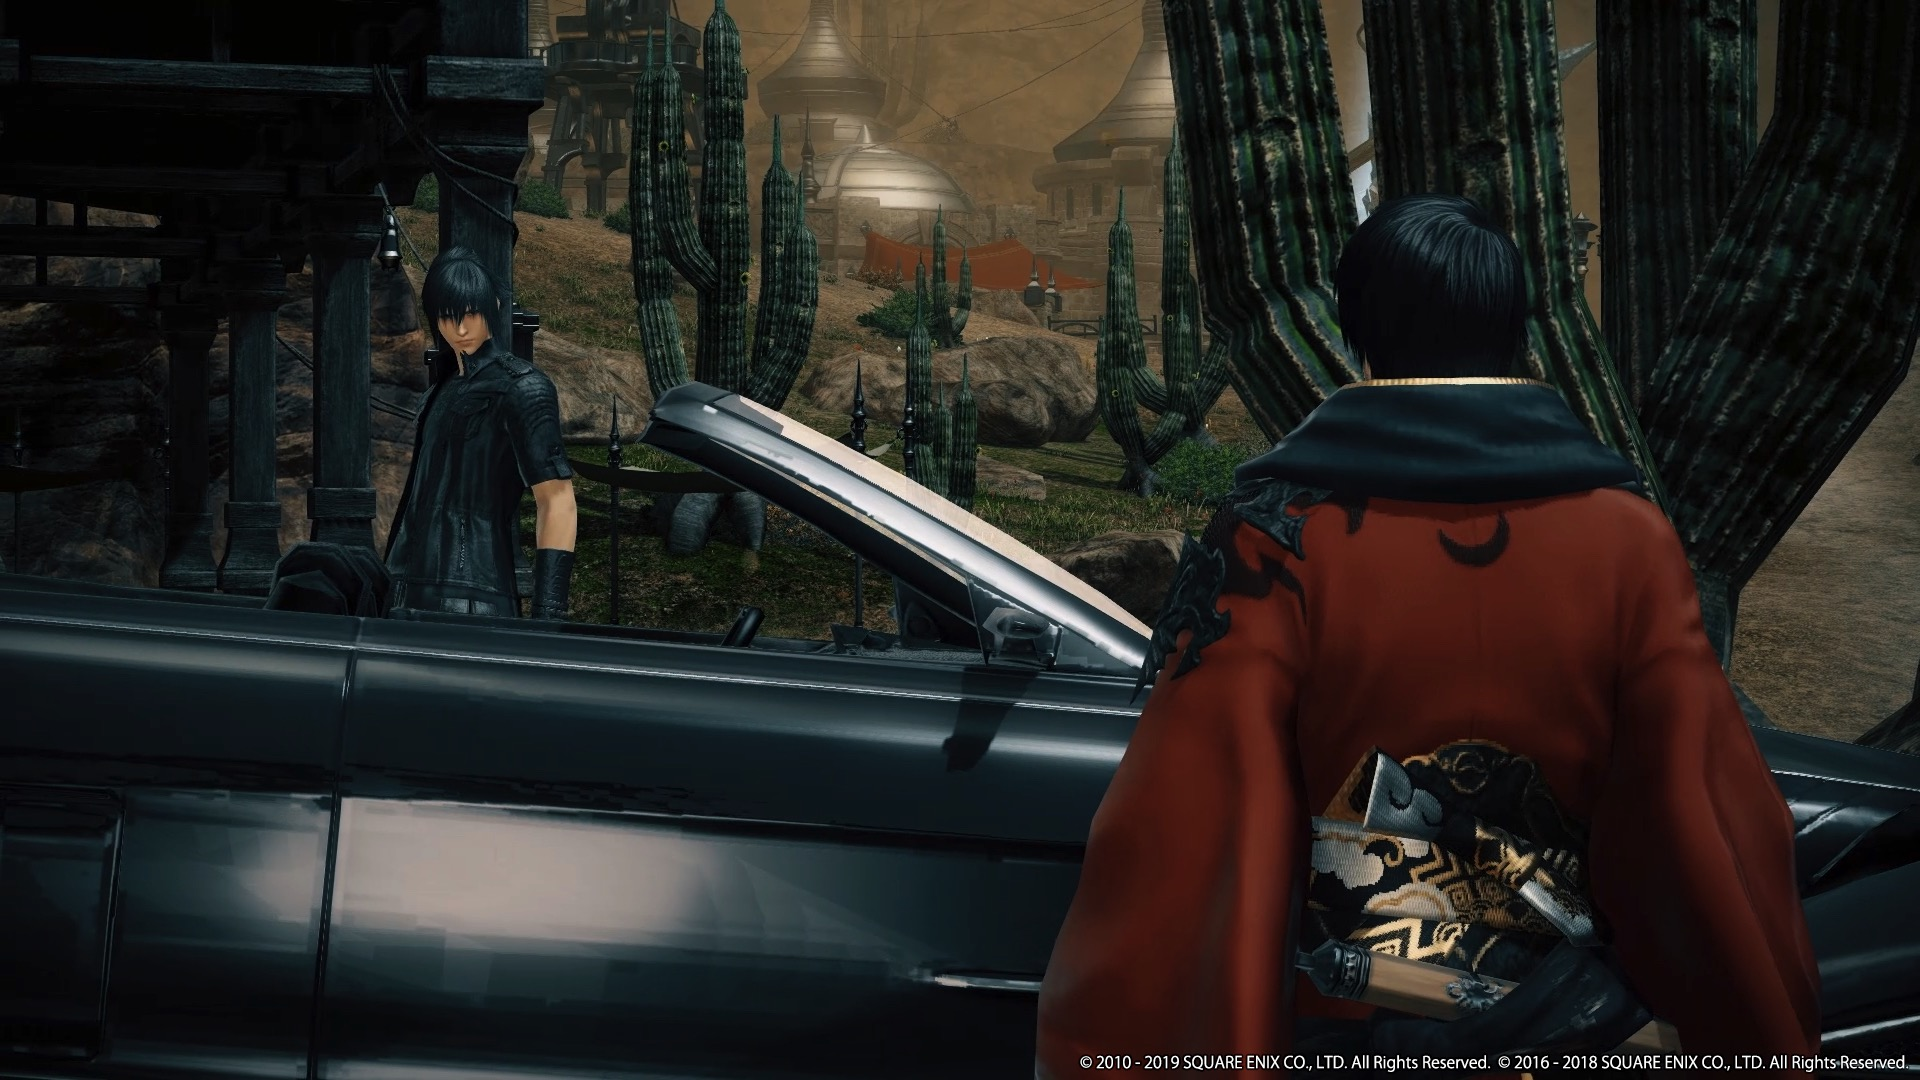 Final Fantasy XV in Final Fantasy XIV